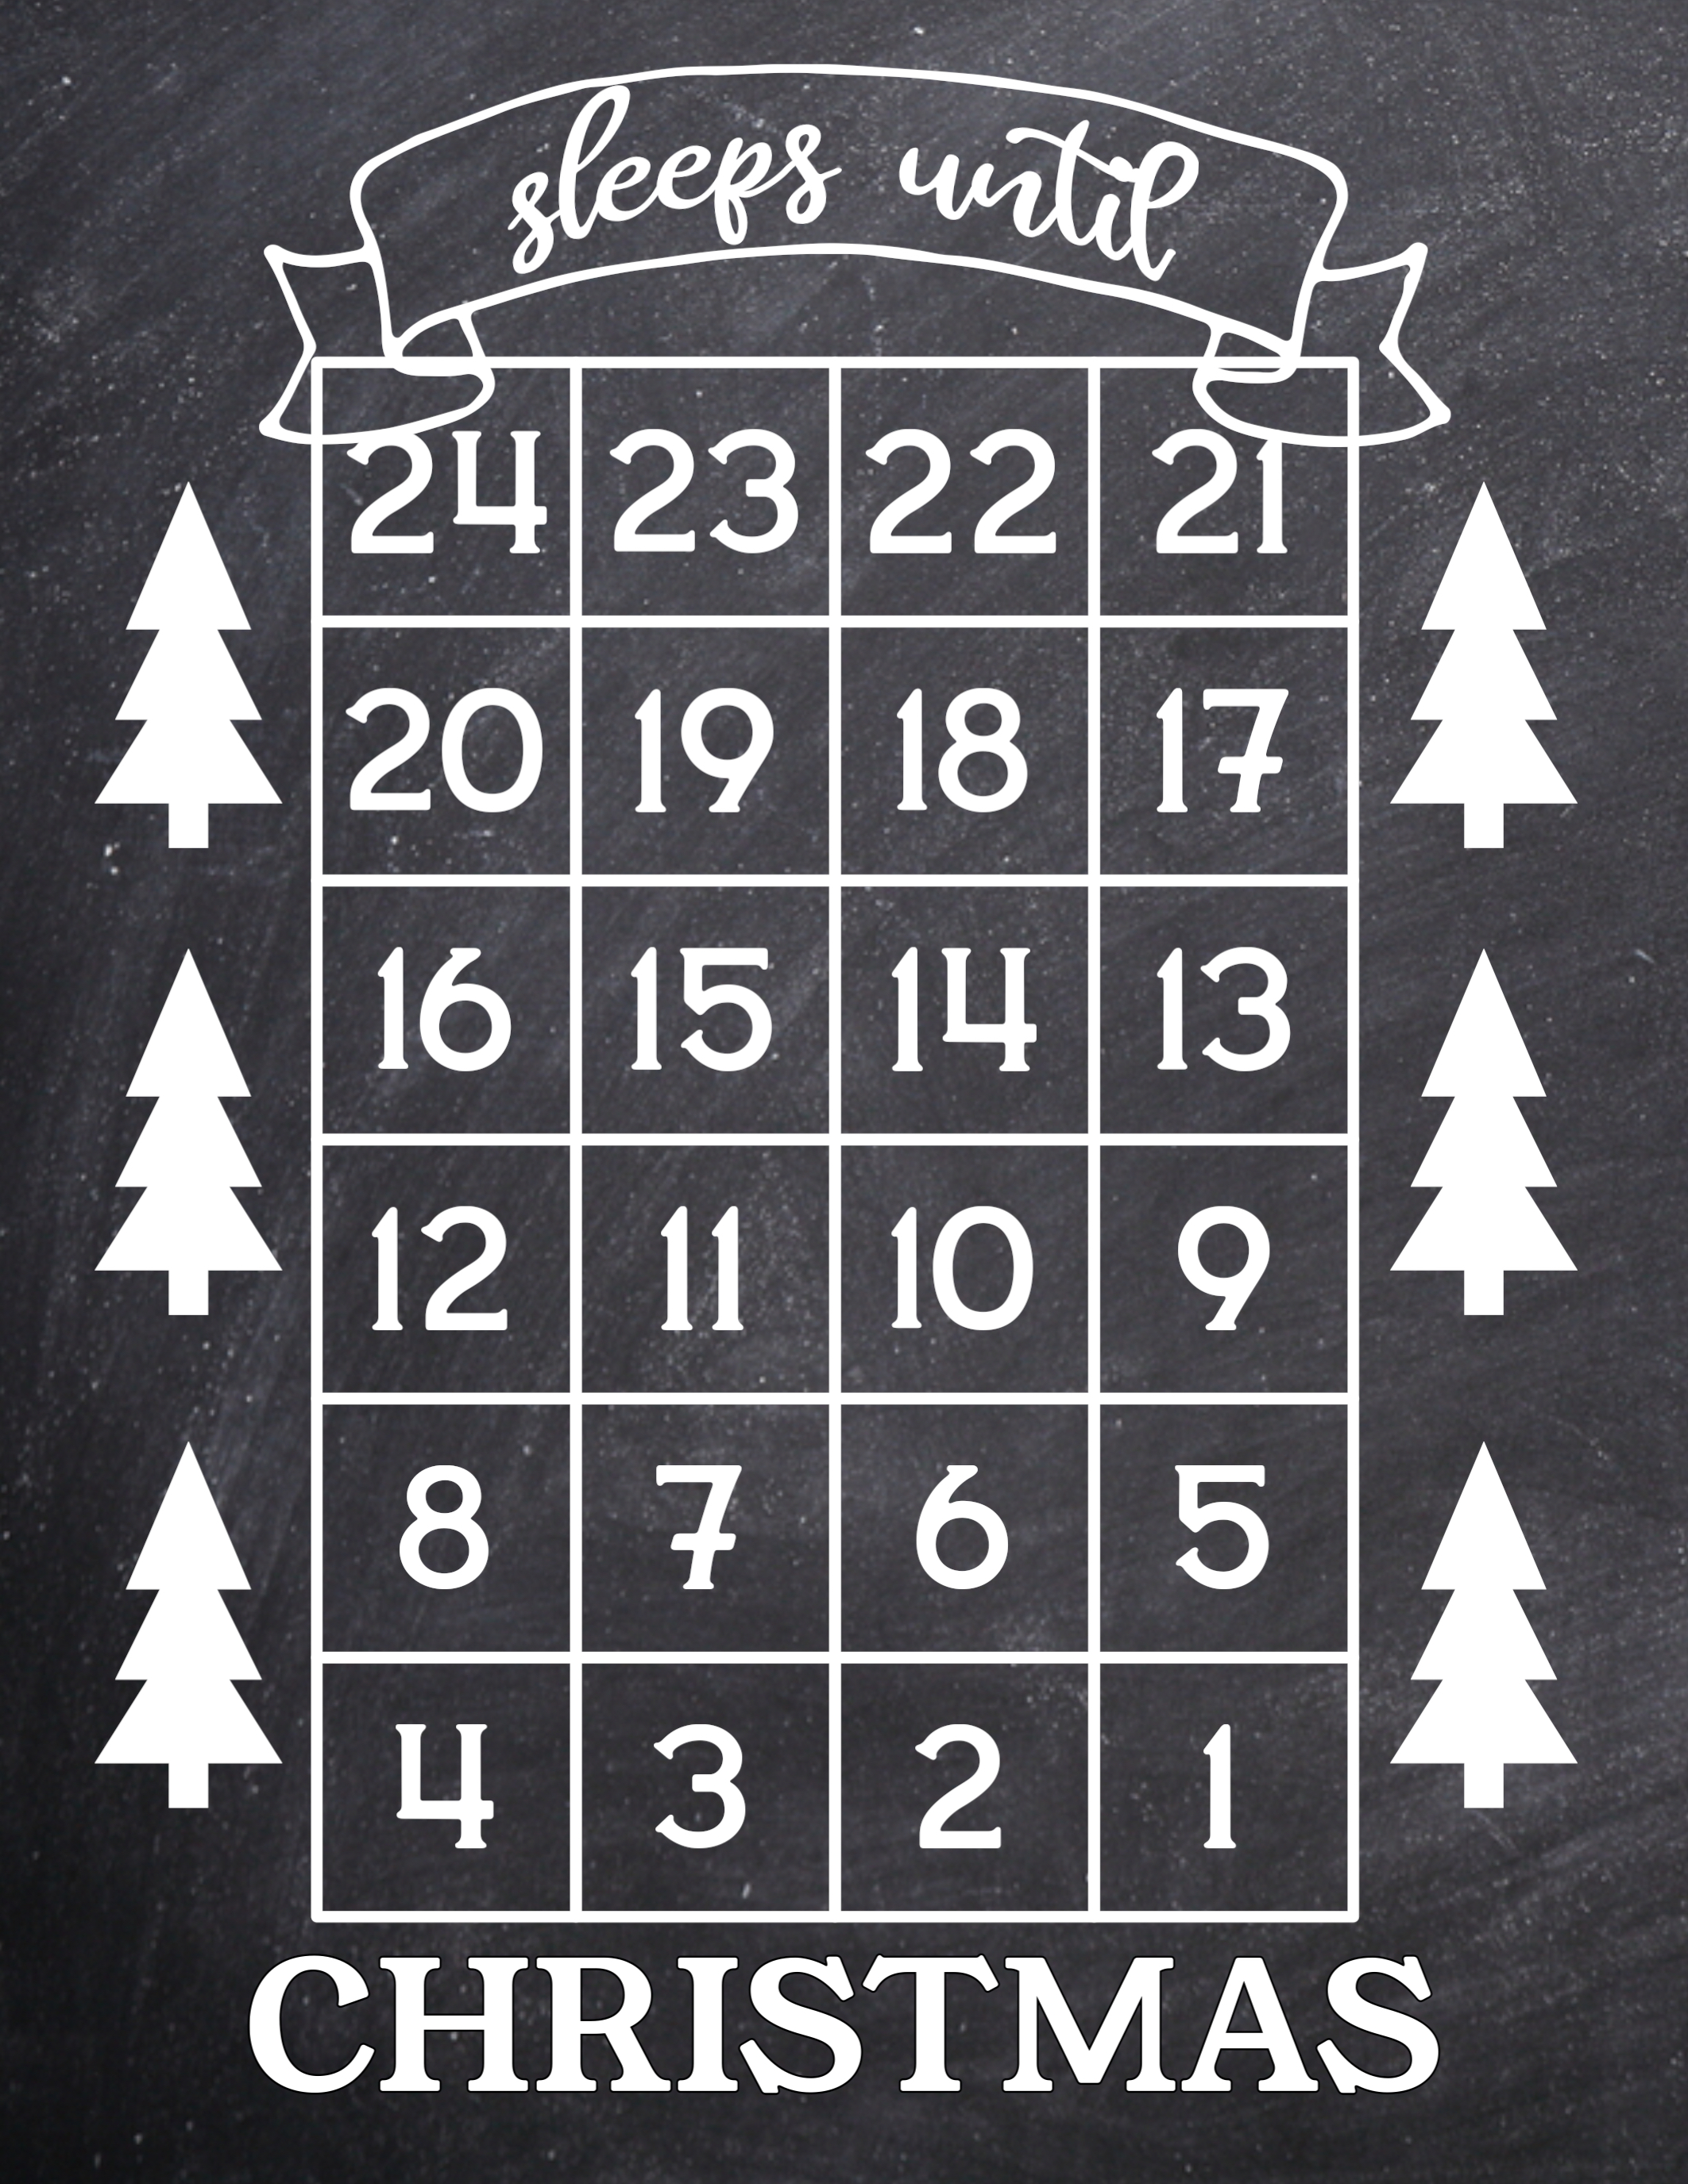 how many days until christmas free printable christmas countdown advent calendar sign with trees - How Long Until Christmas